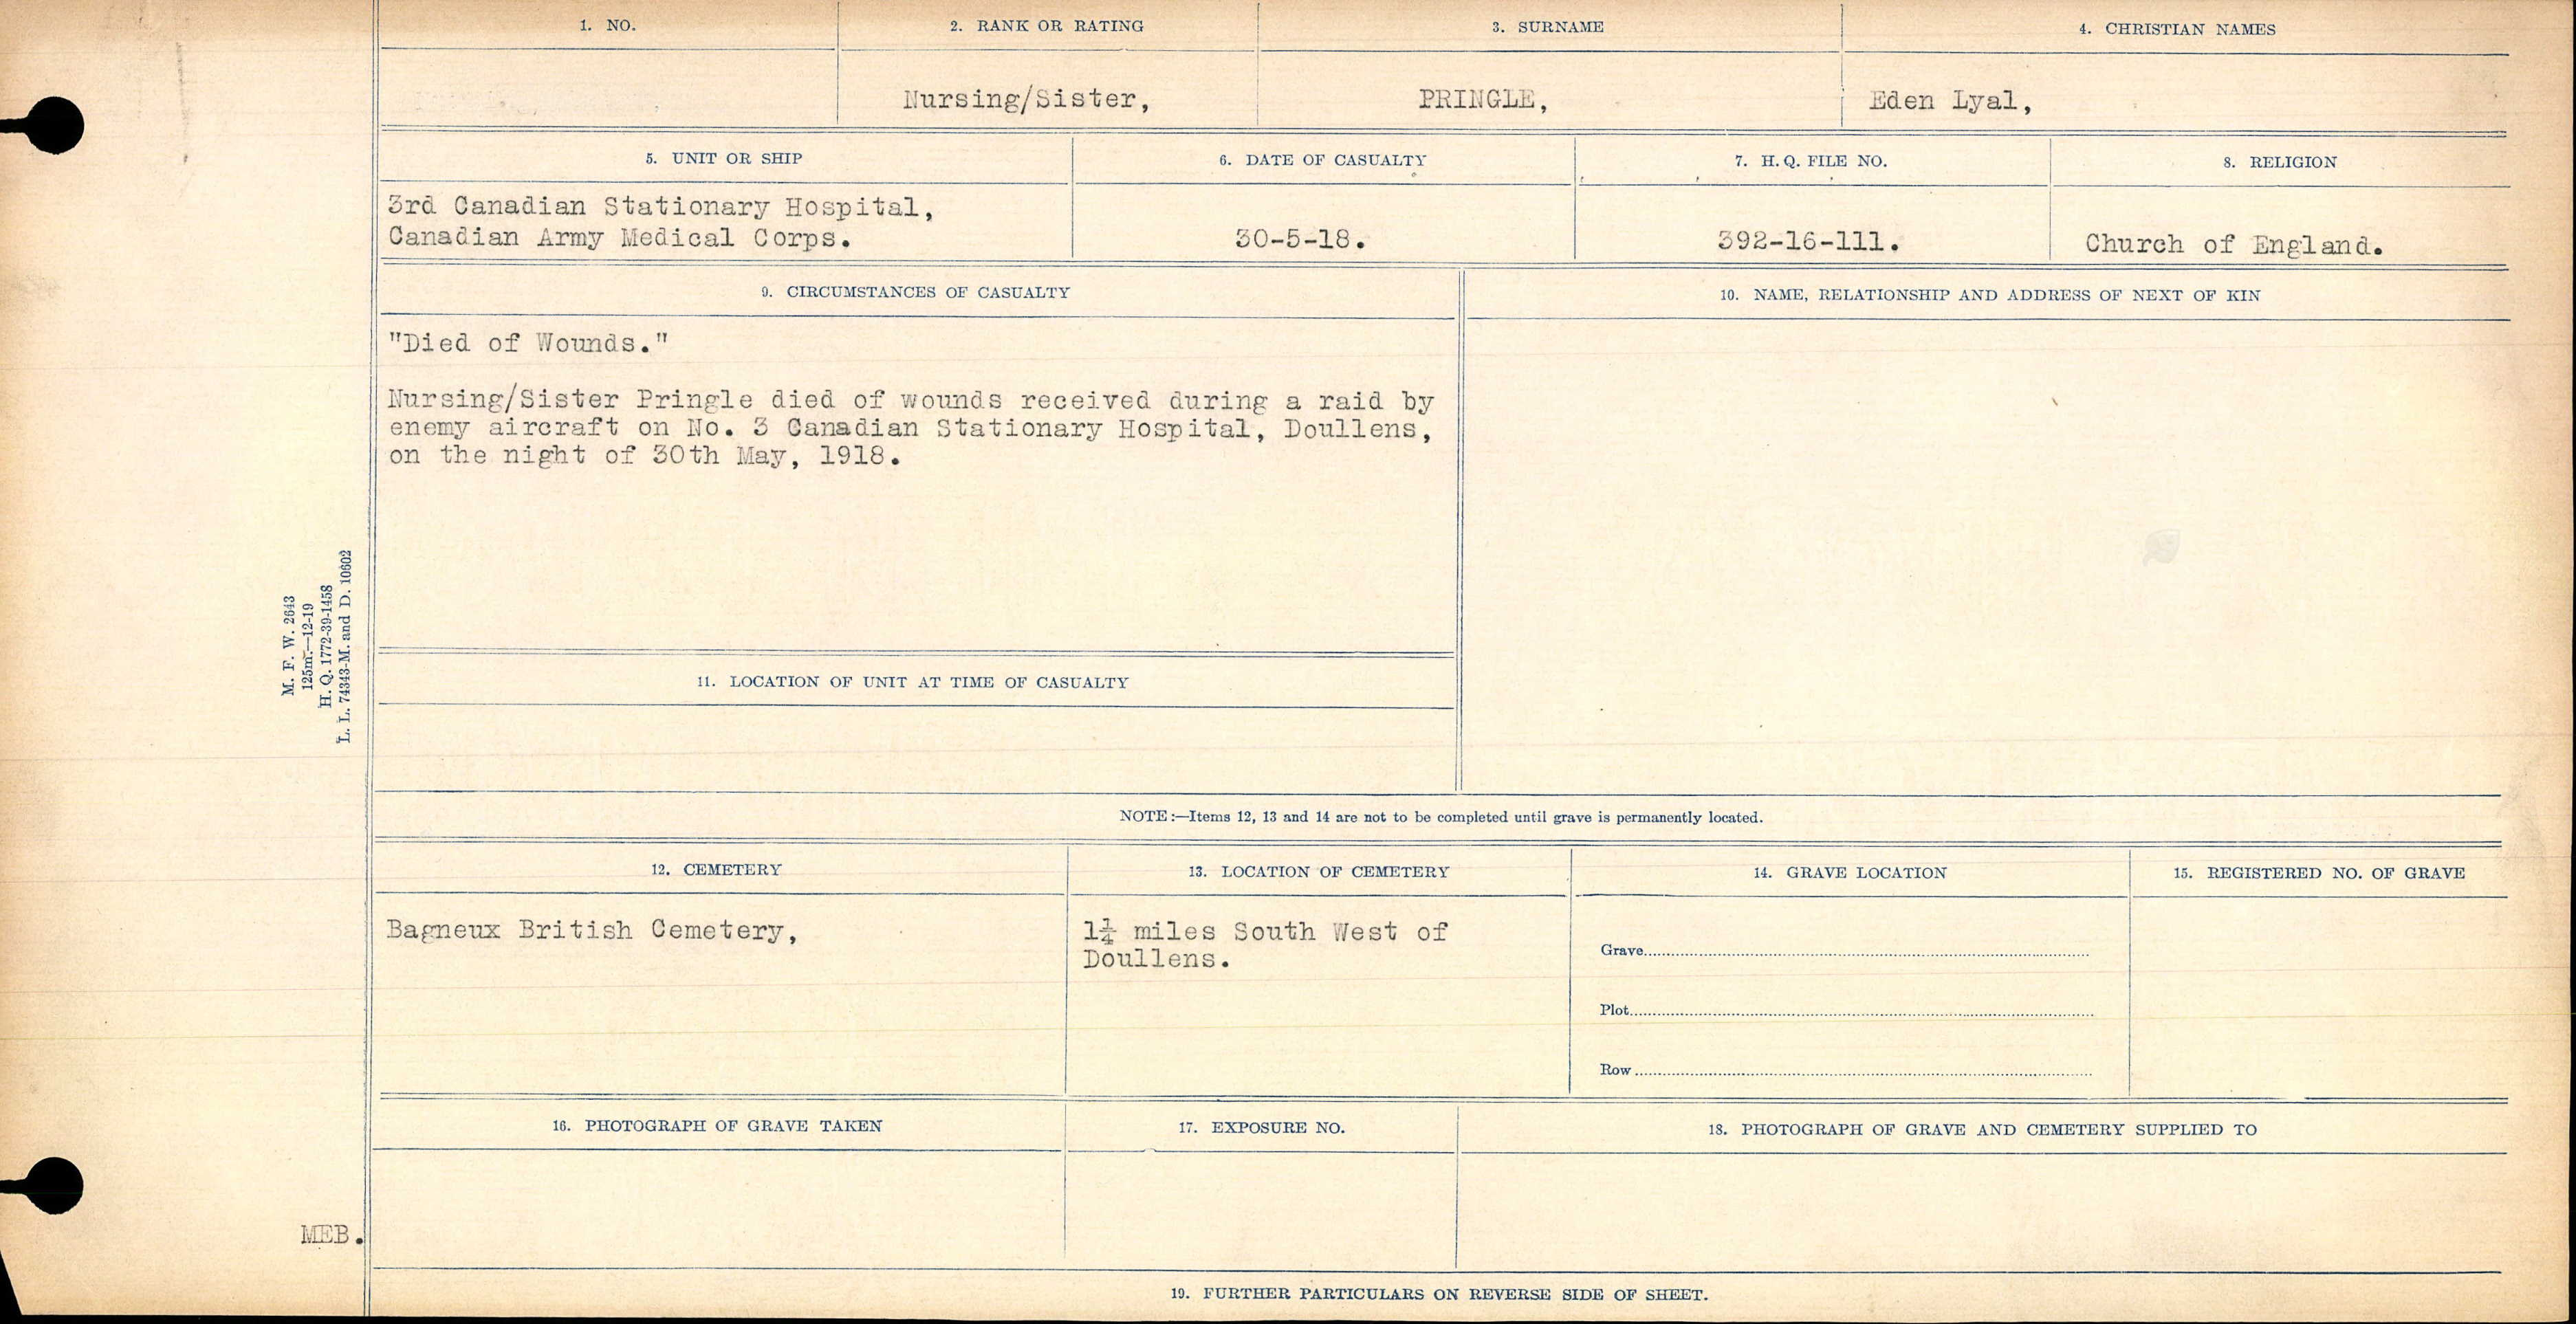 Circumstances of Death Registers – Circumstances of Casualty